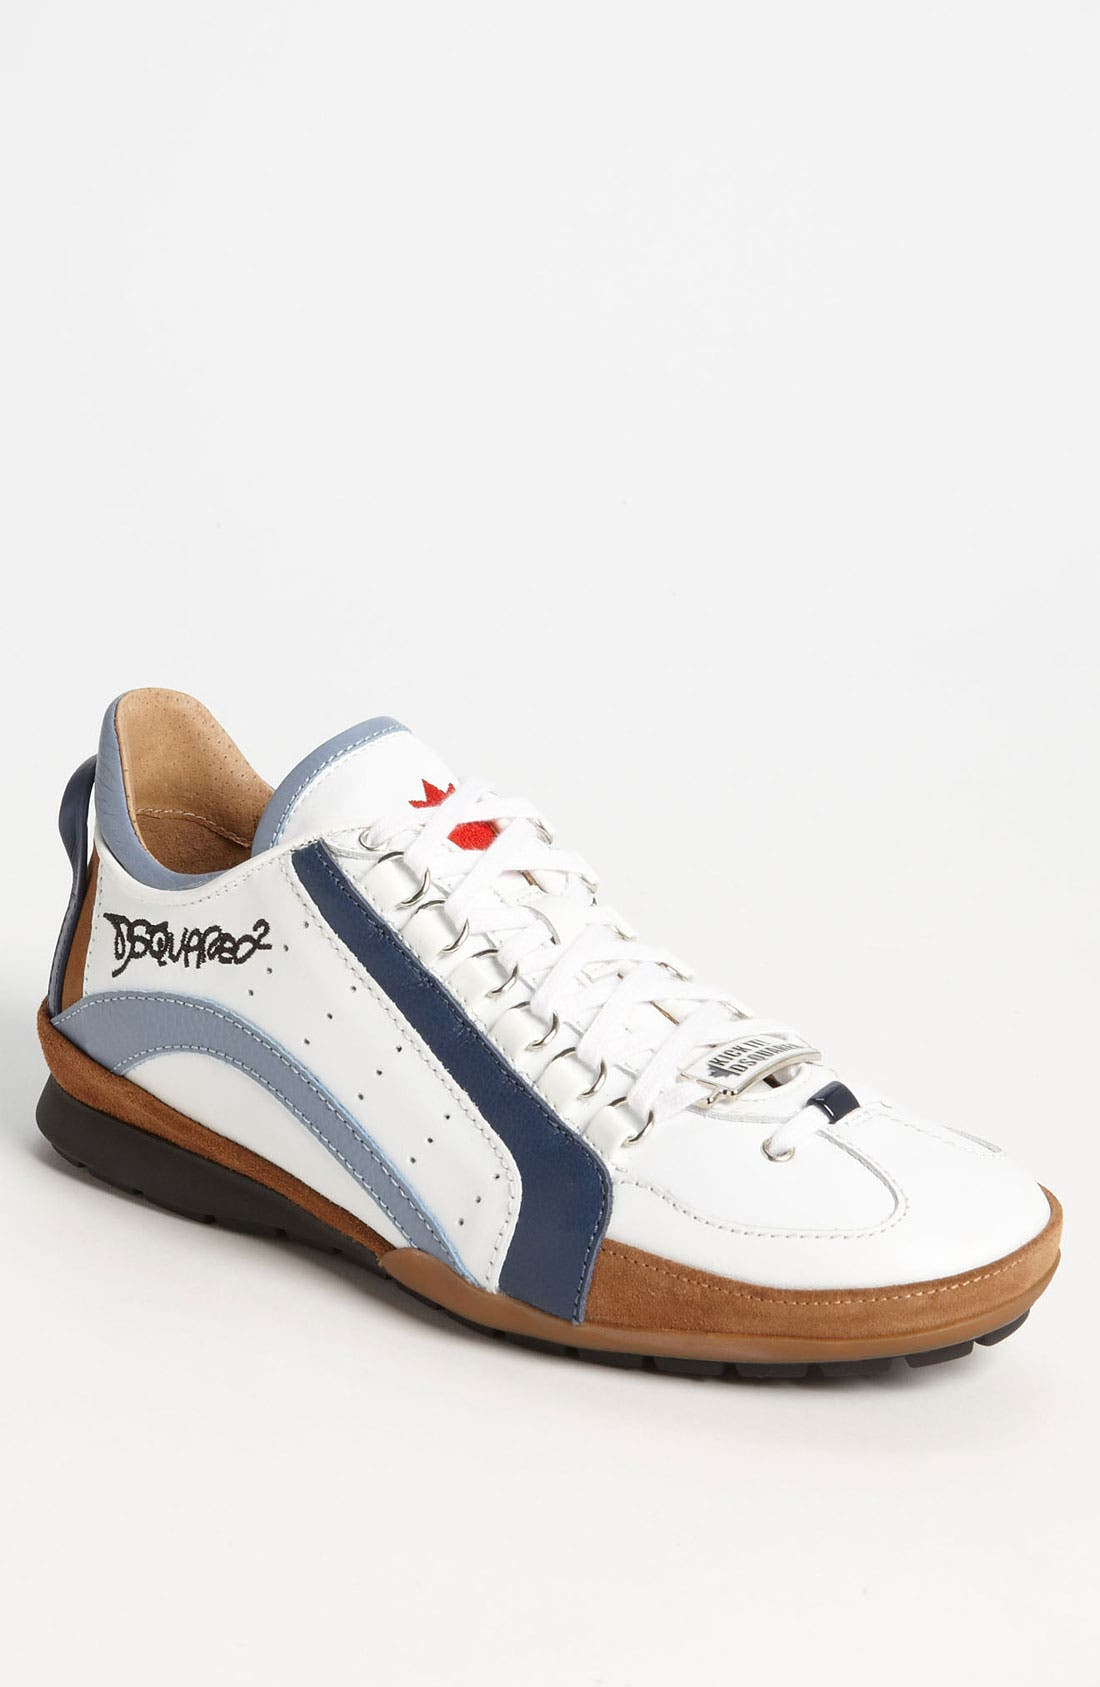 Alternate Image 1 Selected - Dsquared2 '551 Sport' Sneaker